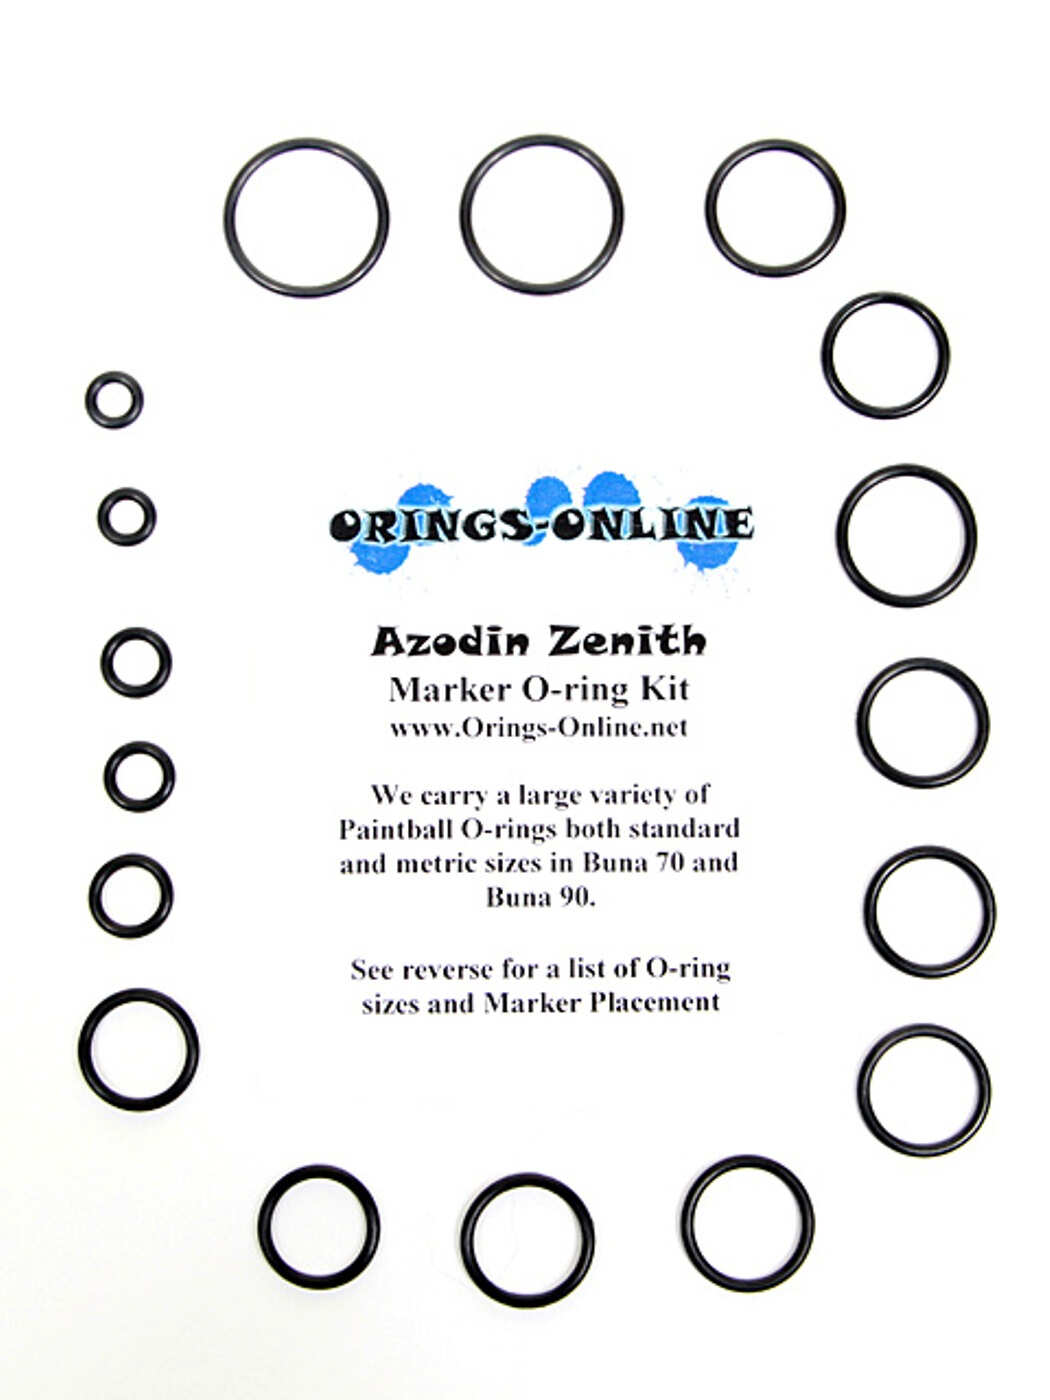 Azodin Zenith Marker O-ring Kit Rebuilds